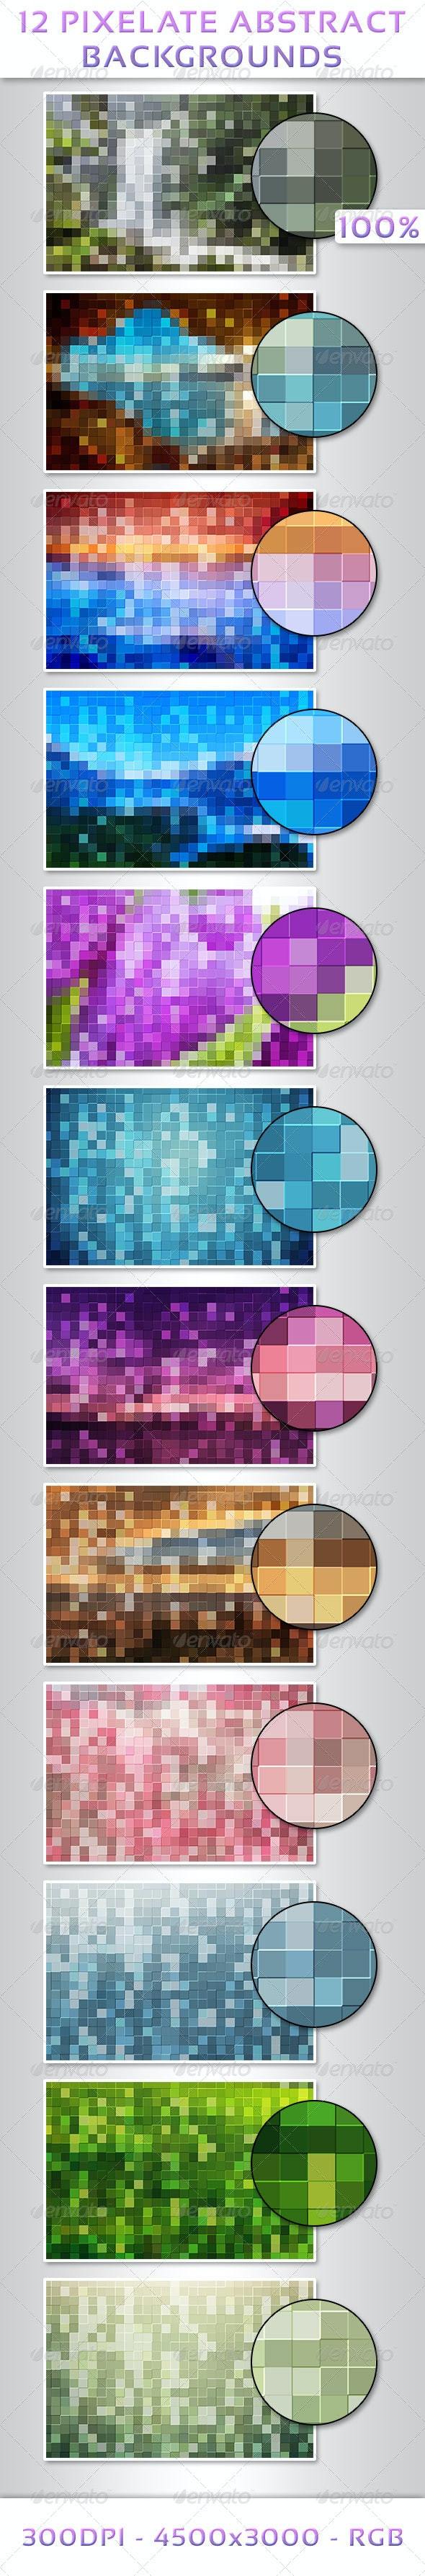 12 Pixelate Abstract Backgrounds - Abstract Backgrounds